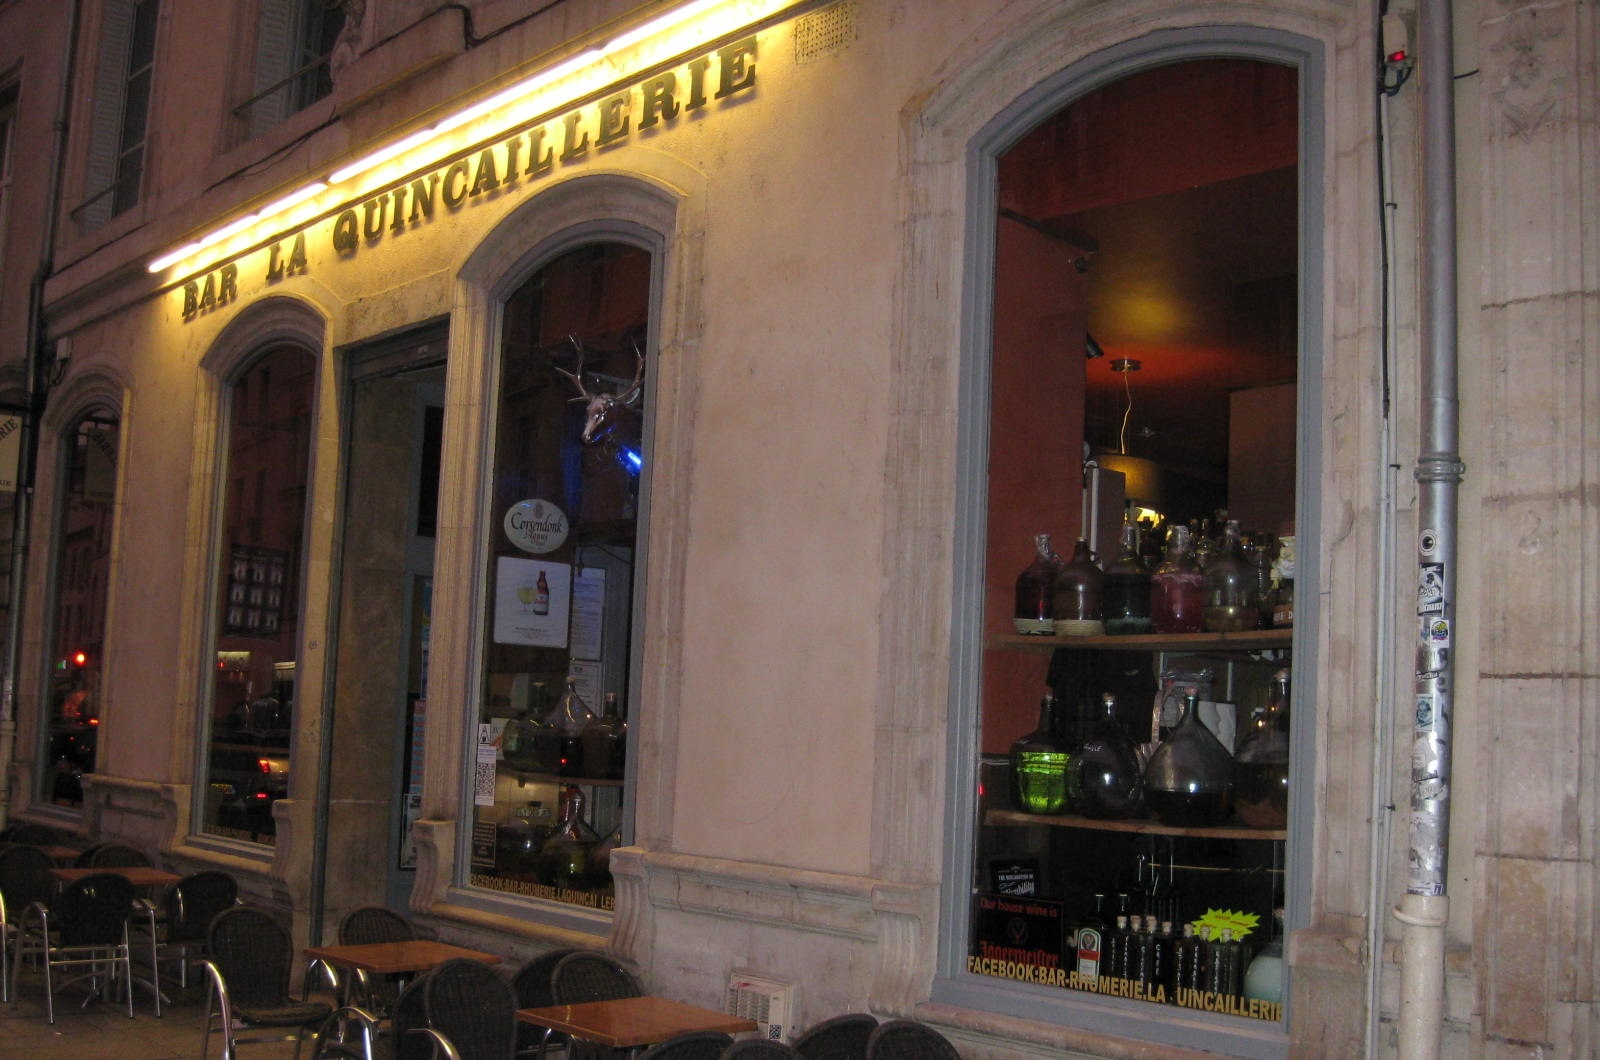 Le bar la Quincaillerie à Nancy